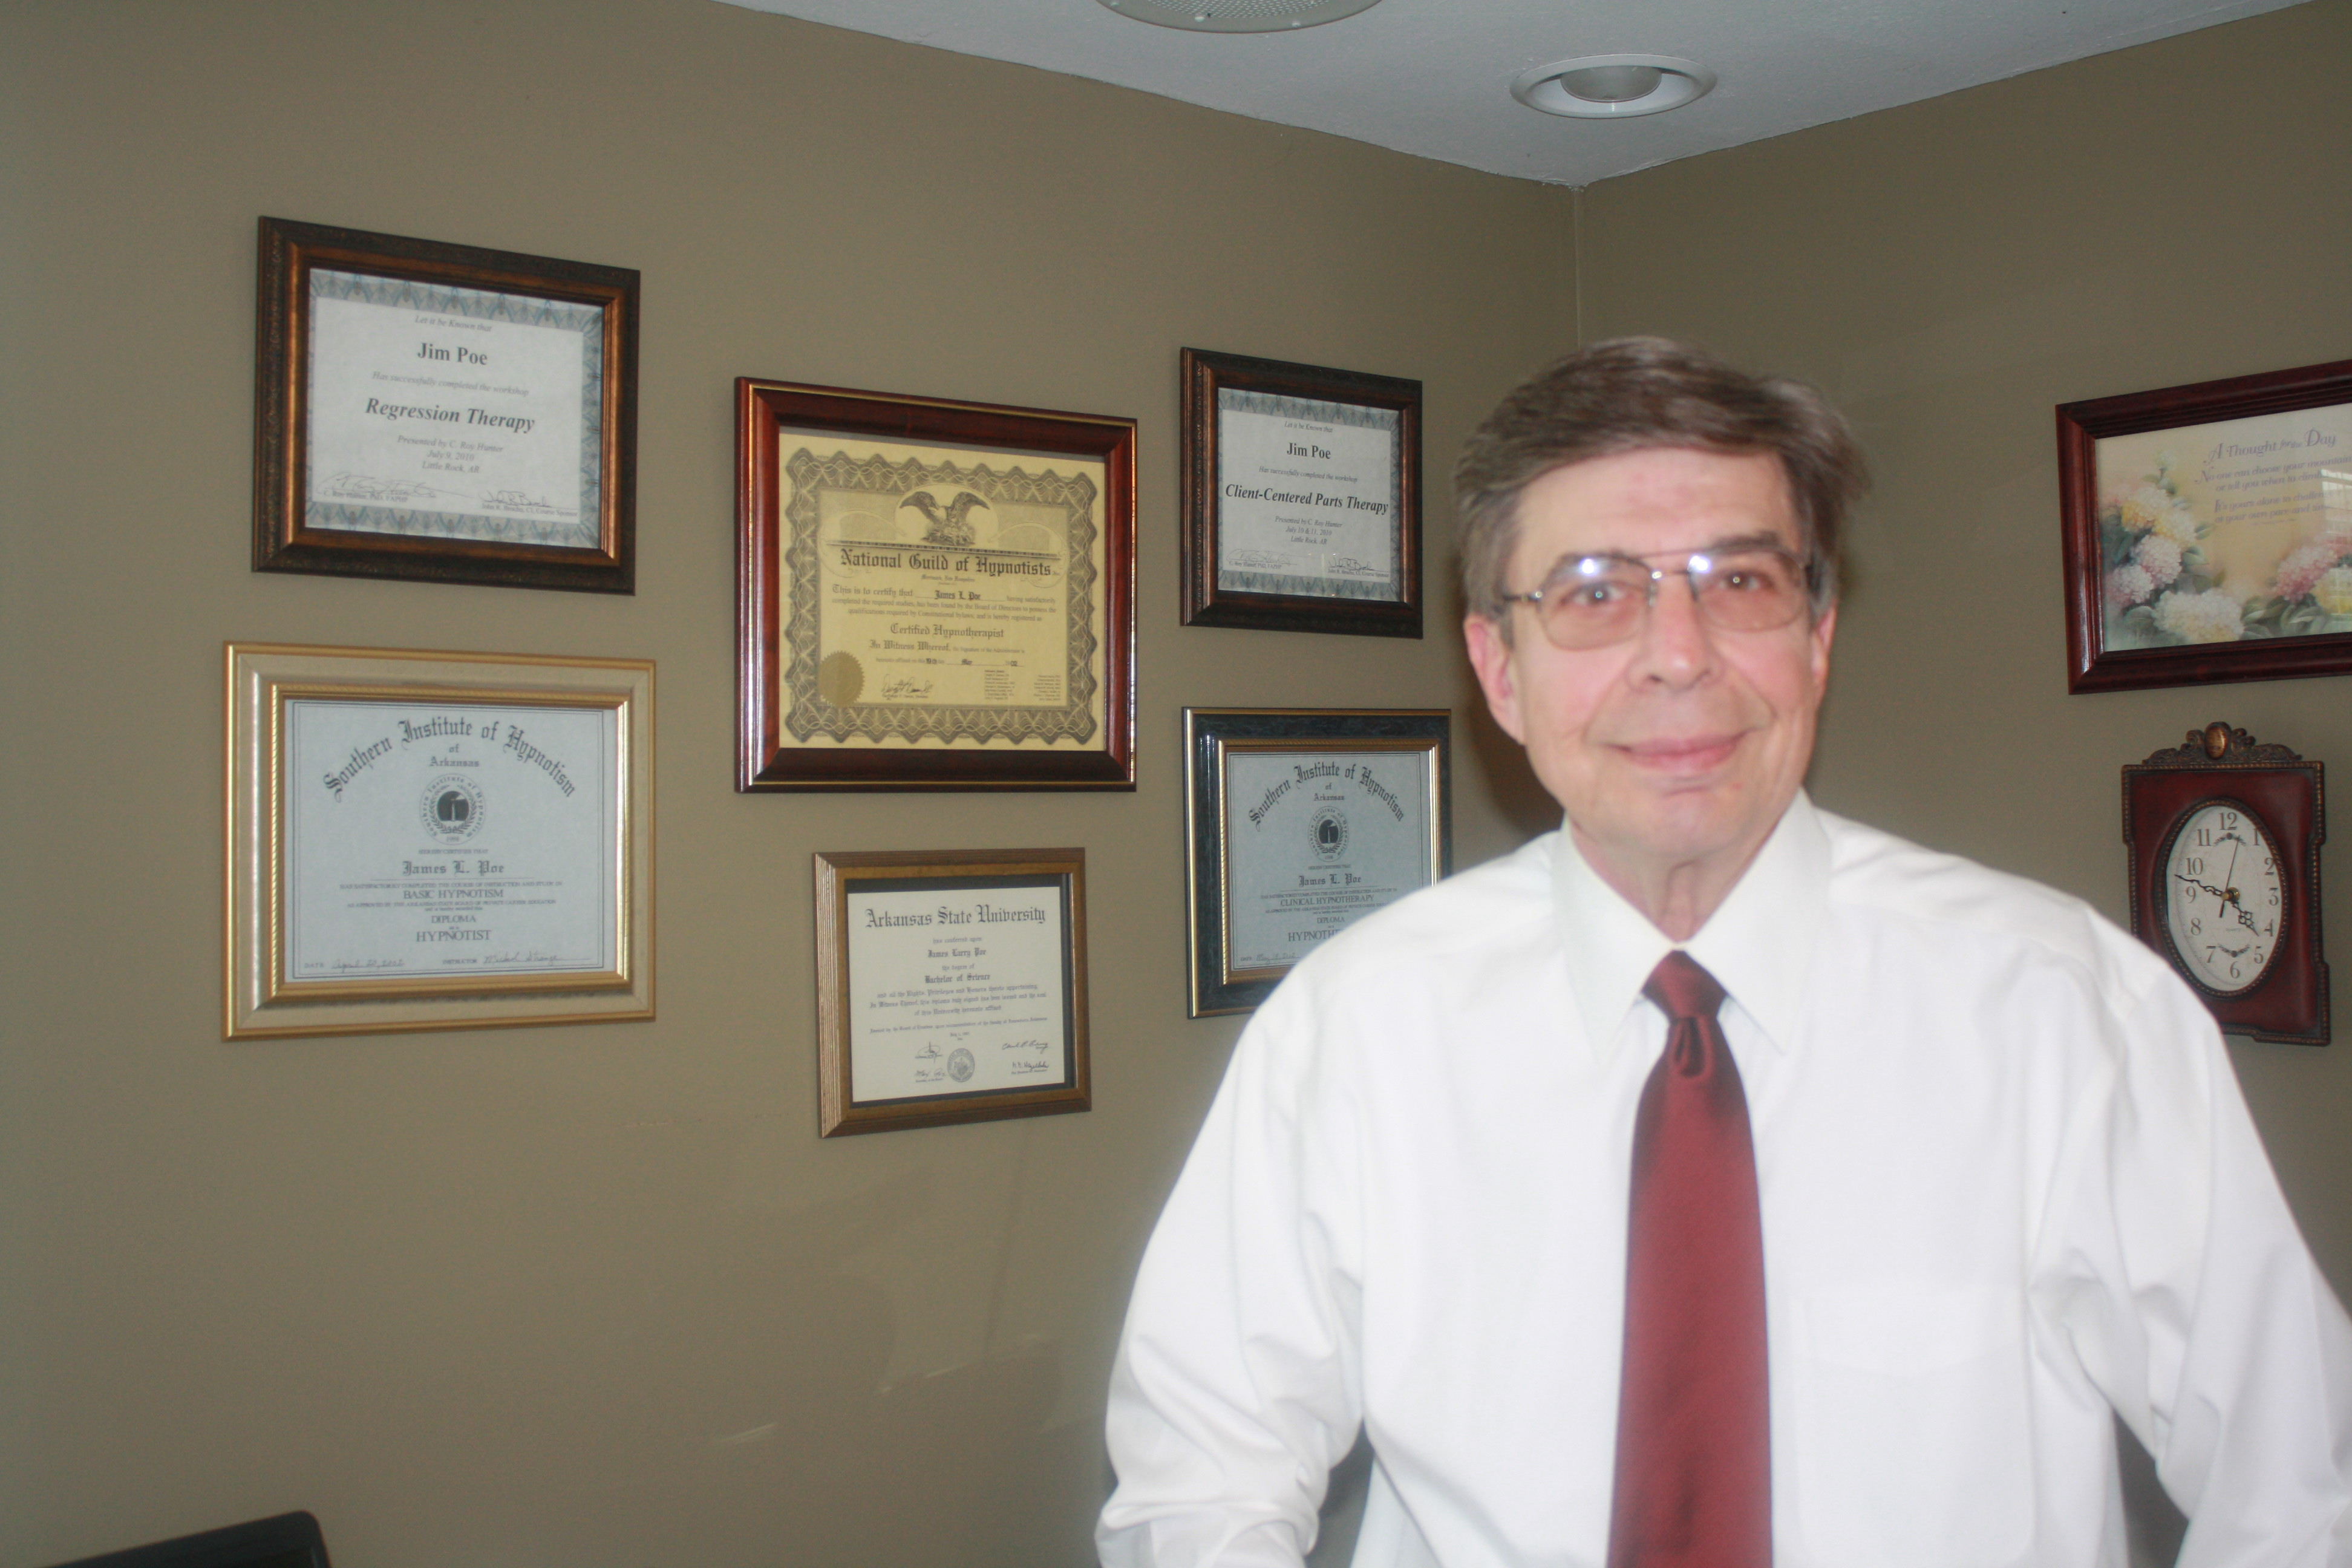 Jim Poe Hypnotherapy - Call me at 870-935-5763